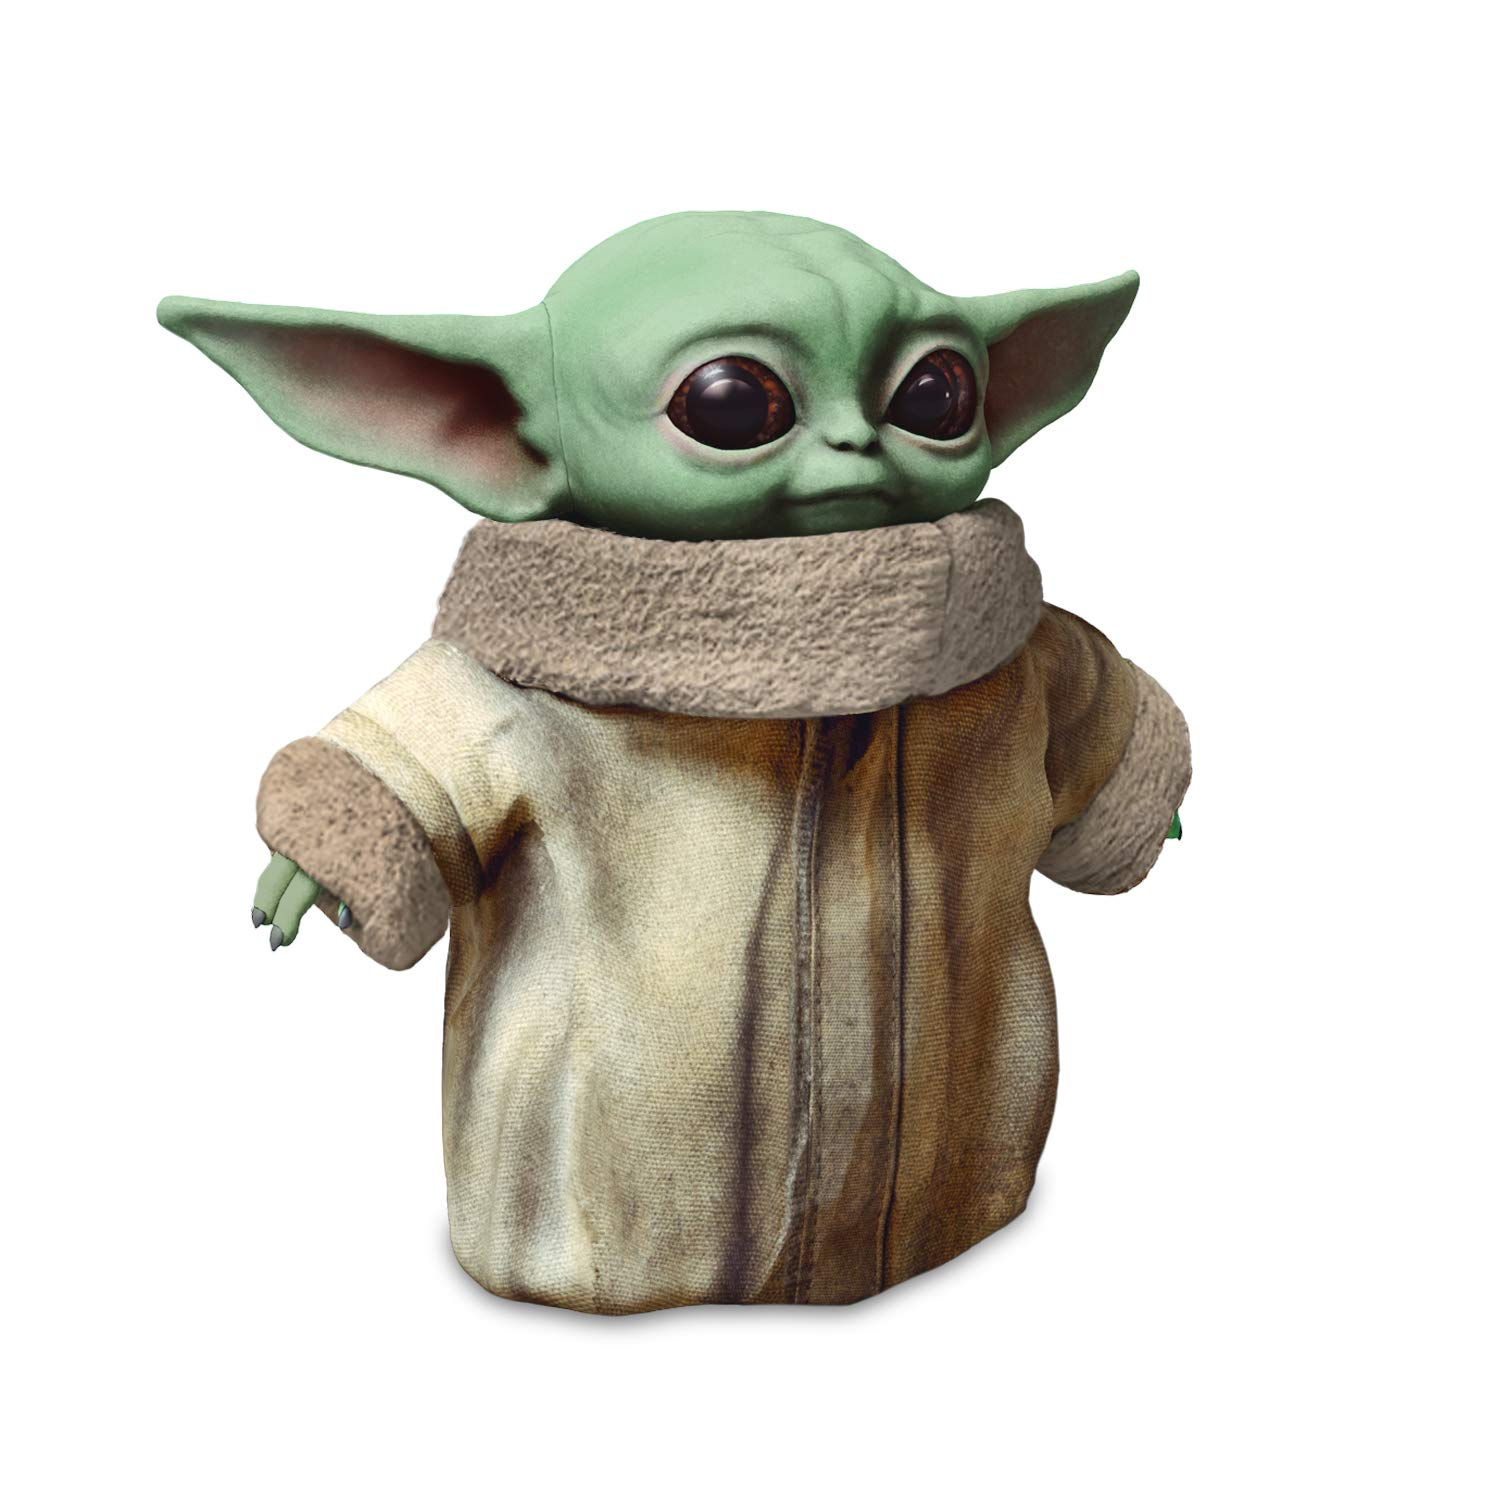 Star Wars The Child Plush Toy, 11-inch Small Yoda-like Soft Figure from The Mandalorian buy it now